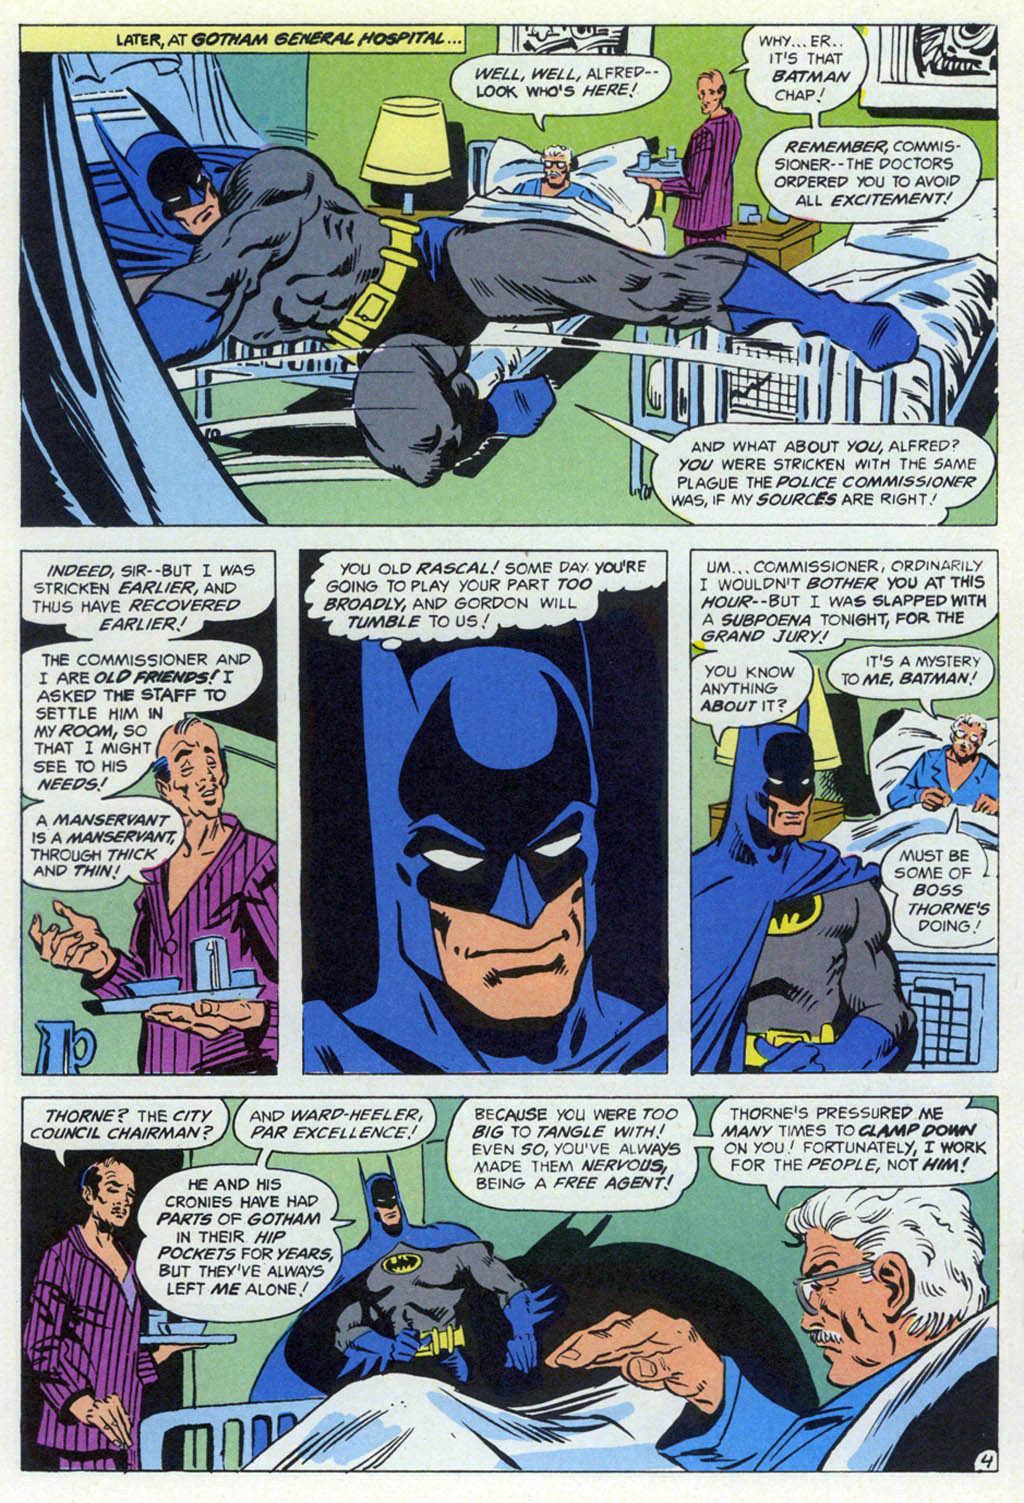 Read online Shadow of the Batman comic -  Issue #1 - 23